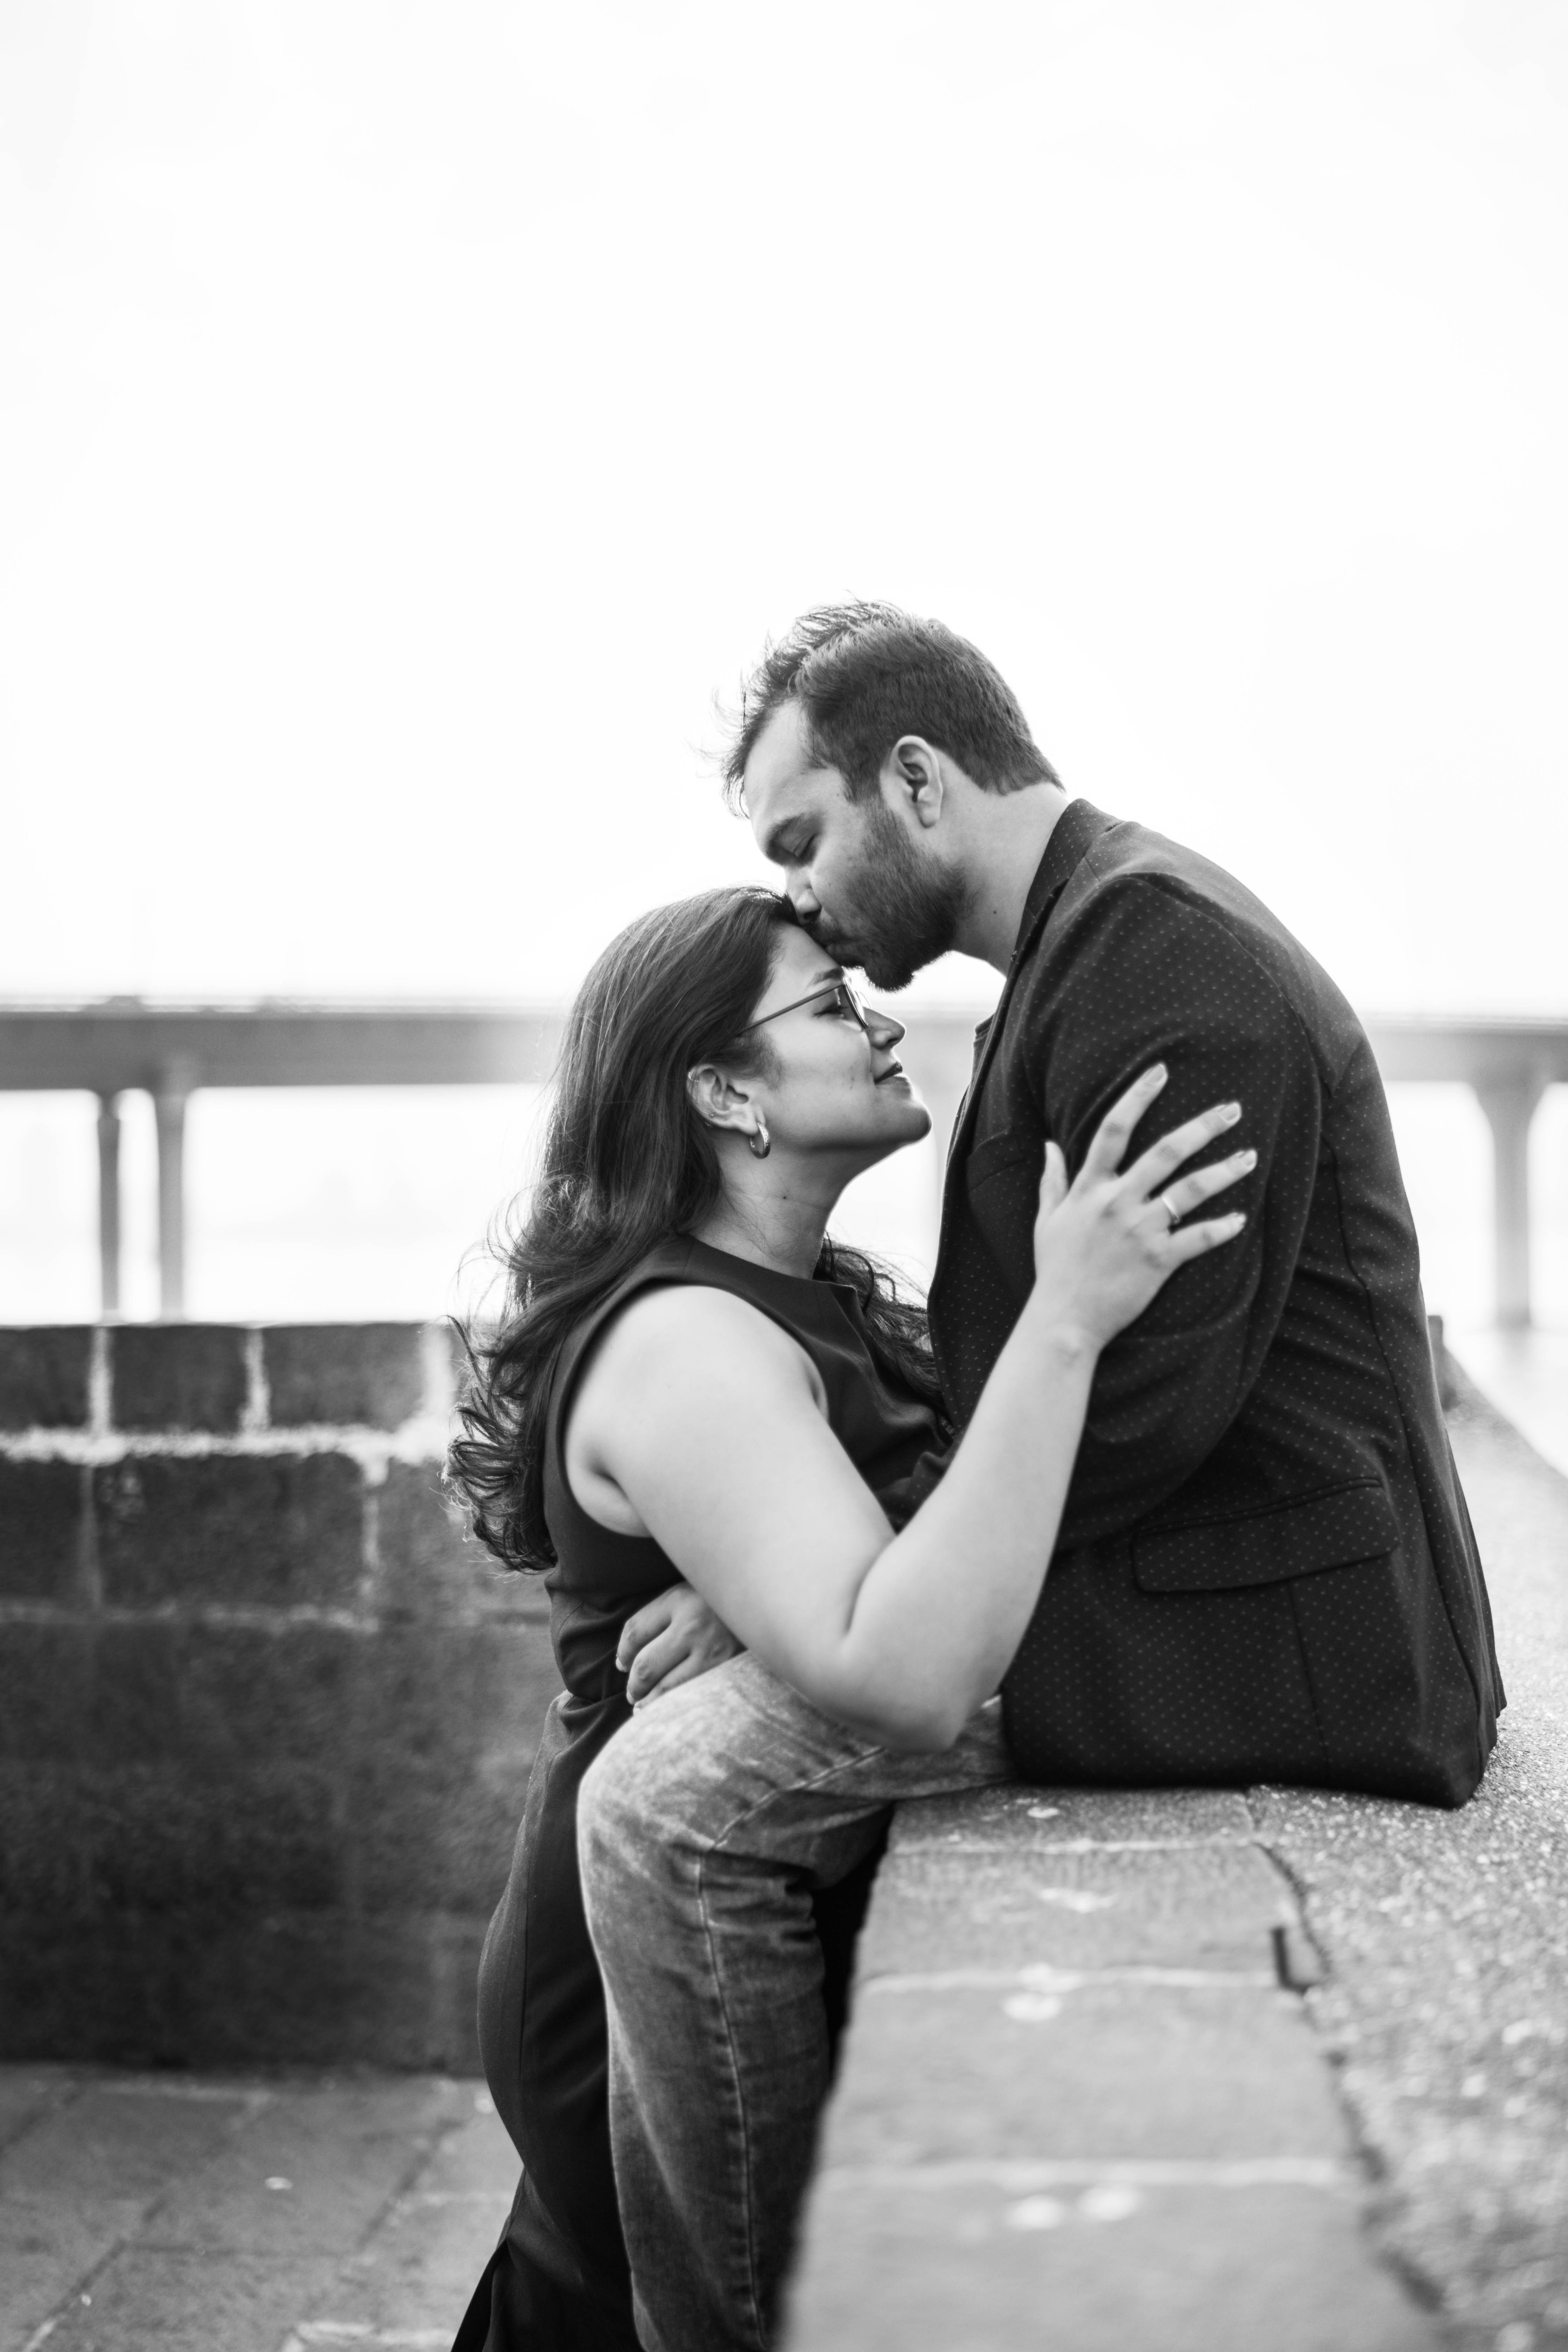 Man In Black Coat Sitting While Kissing Woman, Affection, Love, Wear, Togetherness, HQ Photo